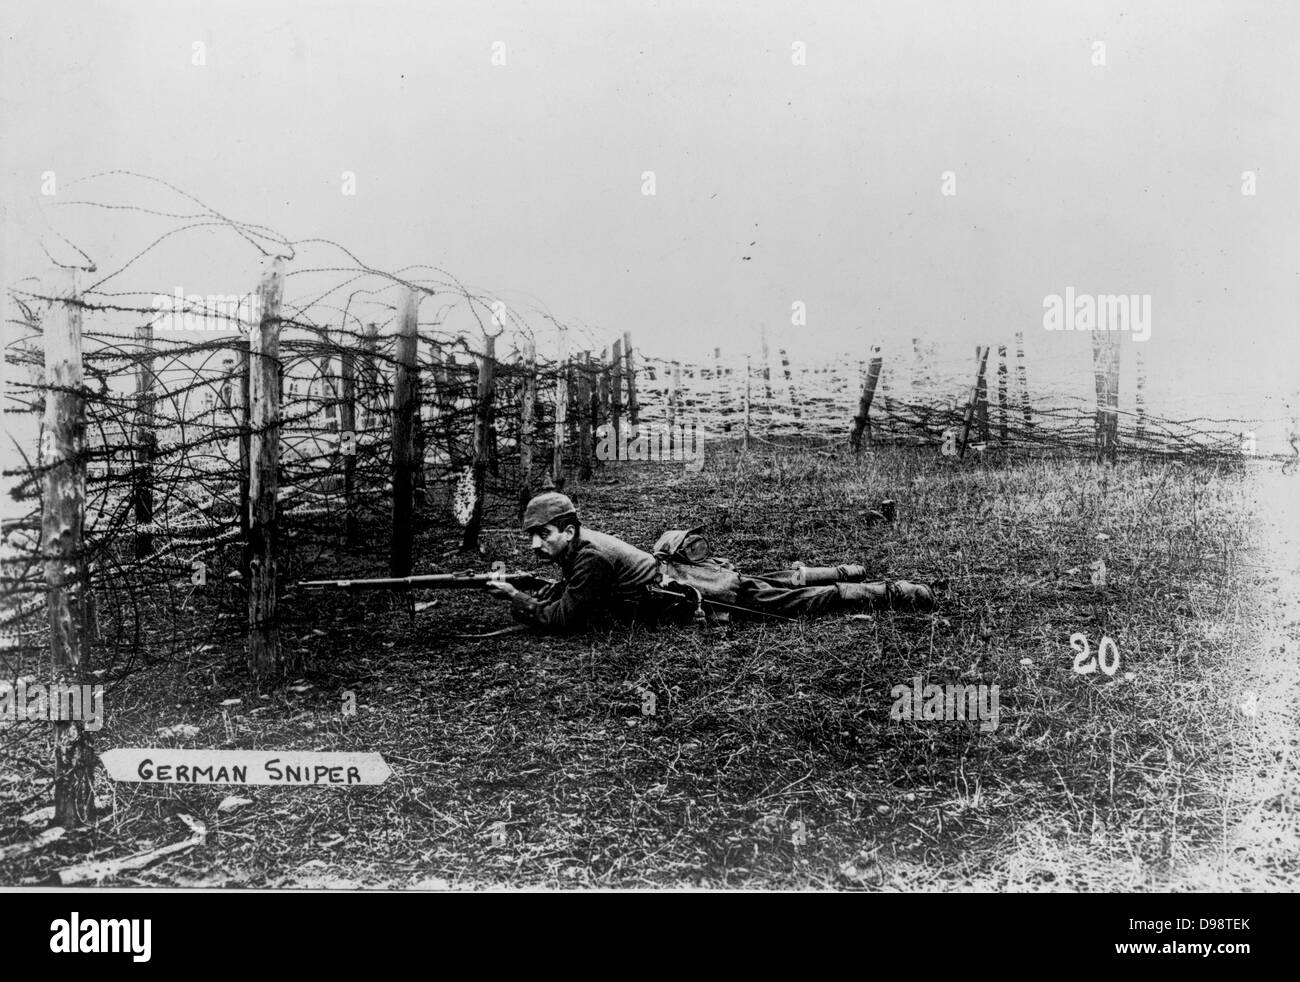 World War I 1914-1918: German sniper wearing a pickelhelm, lying on the ground behind barbed wire entanglements, - Stock Image